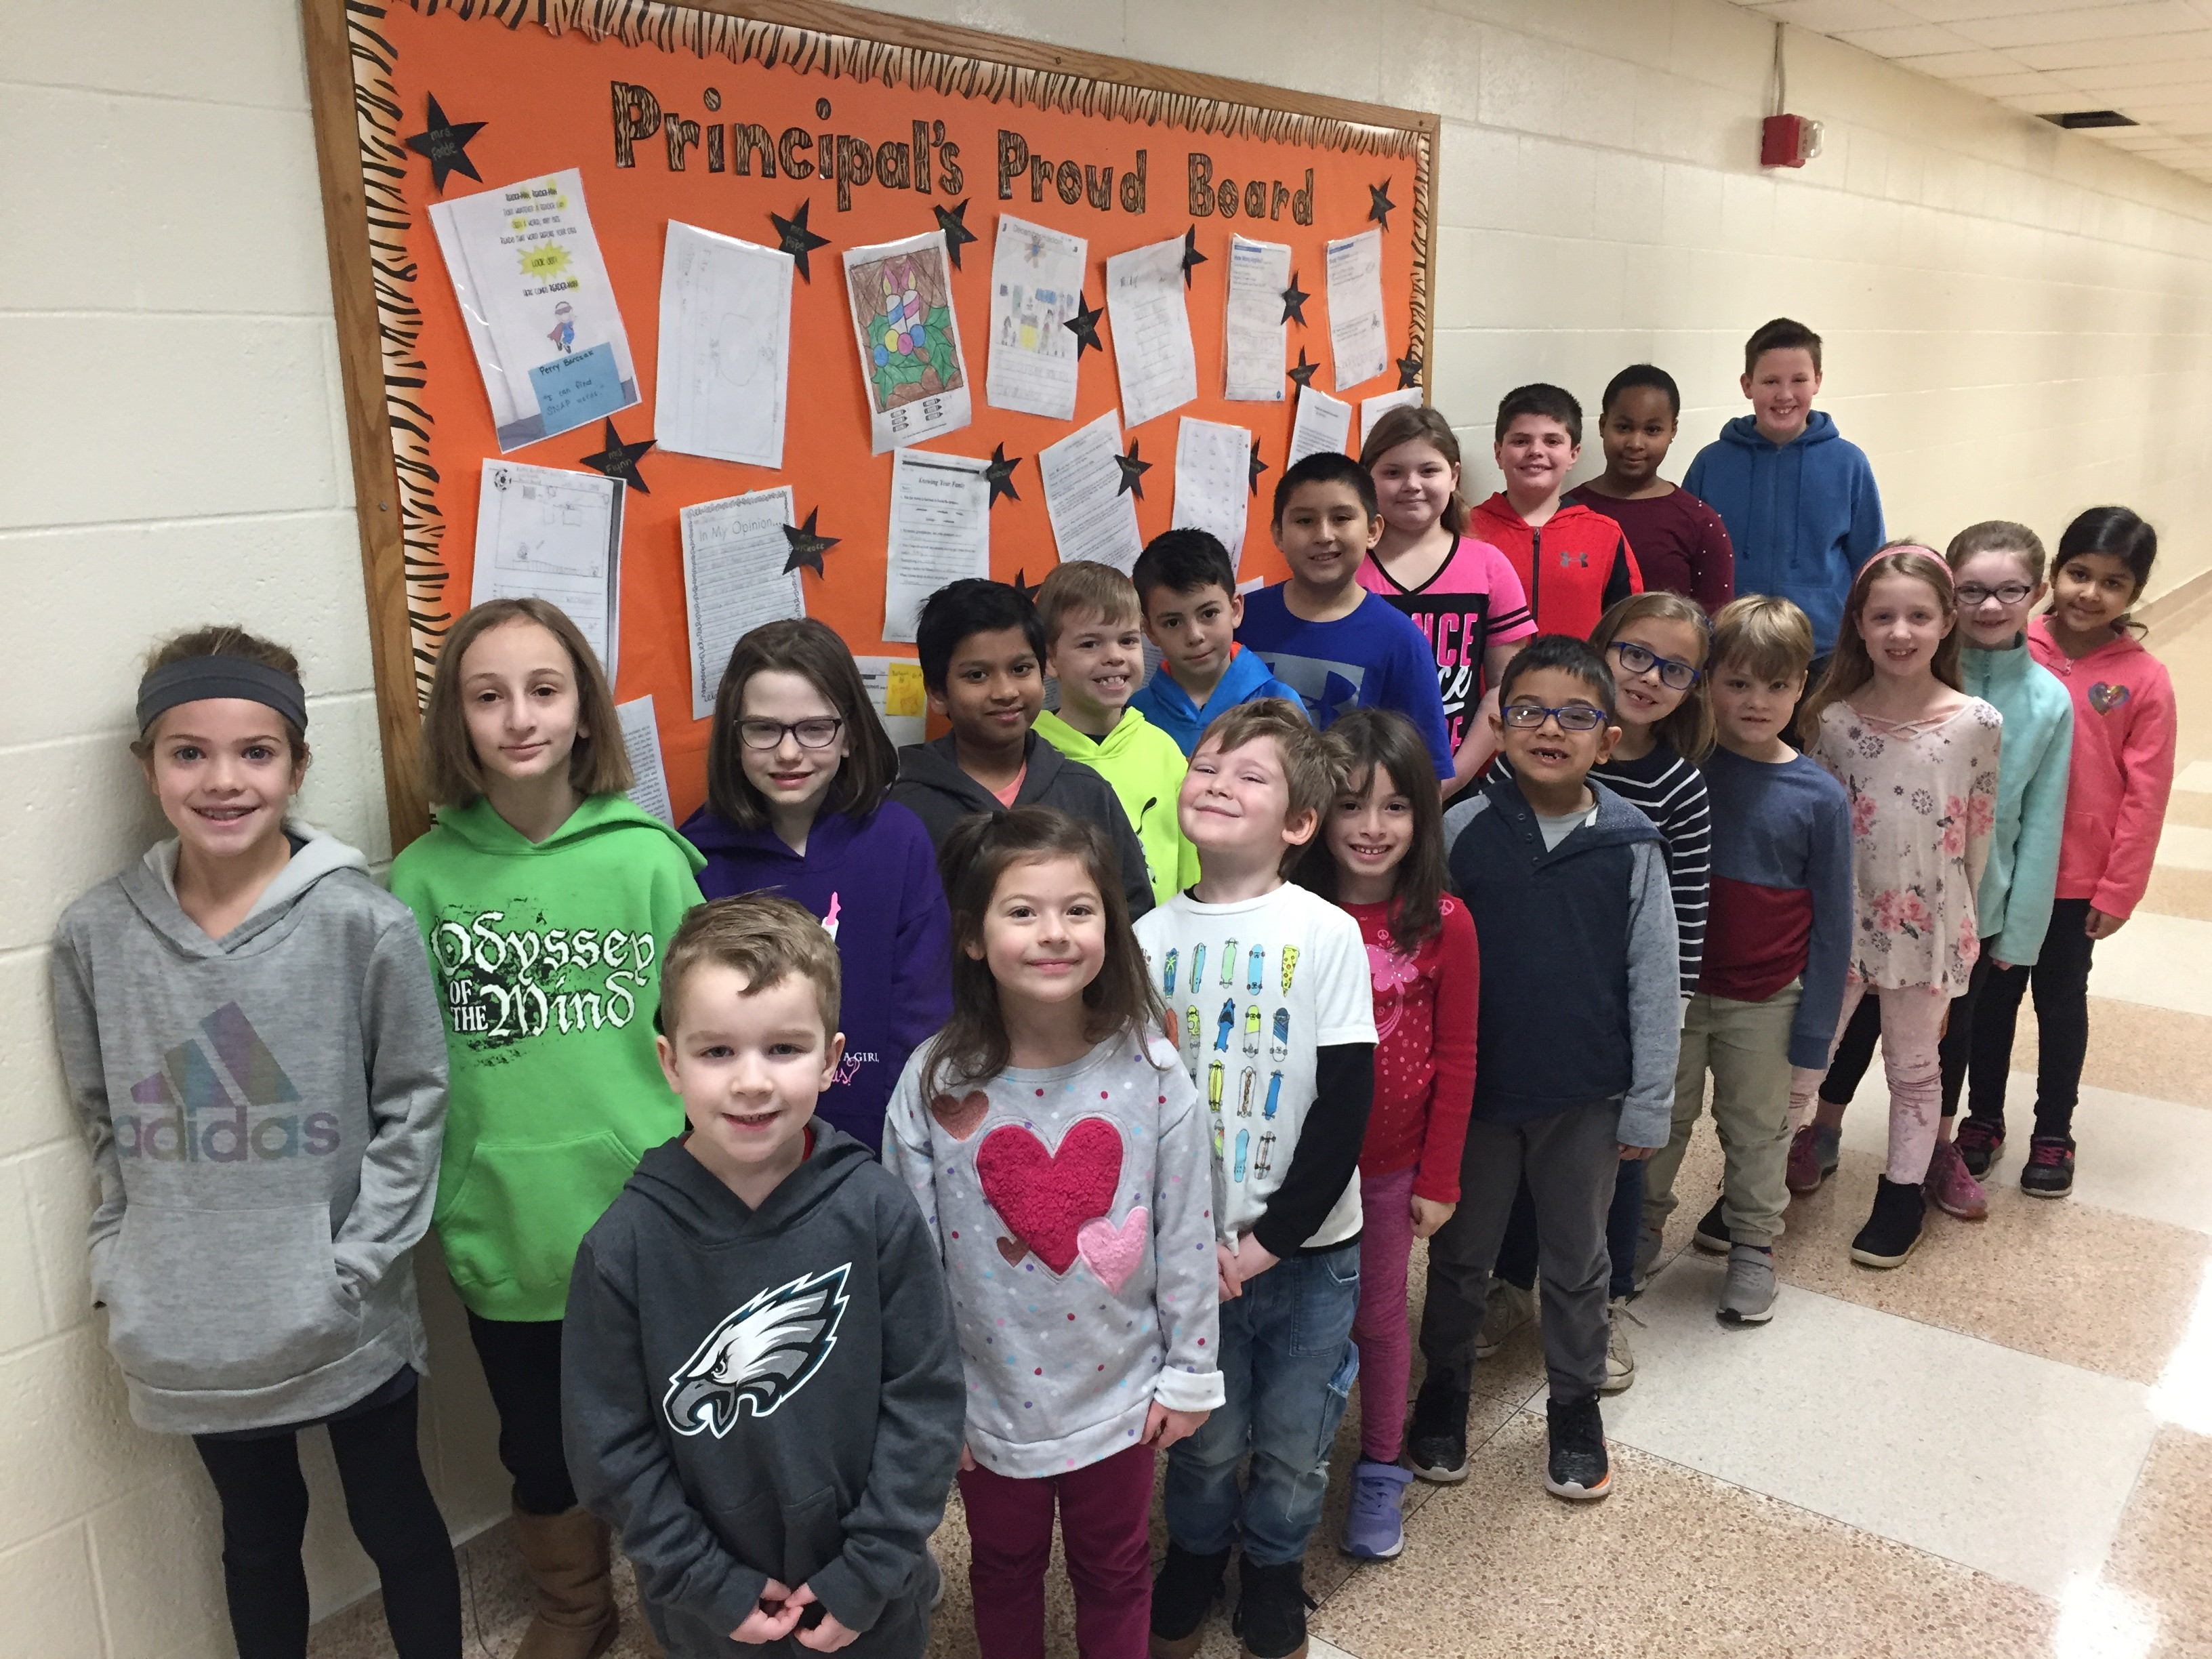 Principal's Proud Board ~ January 2019